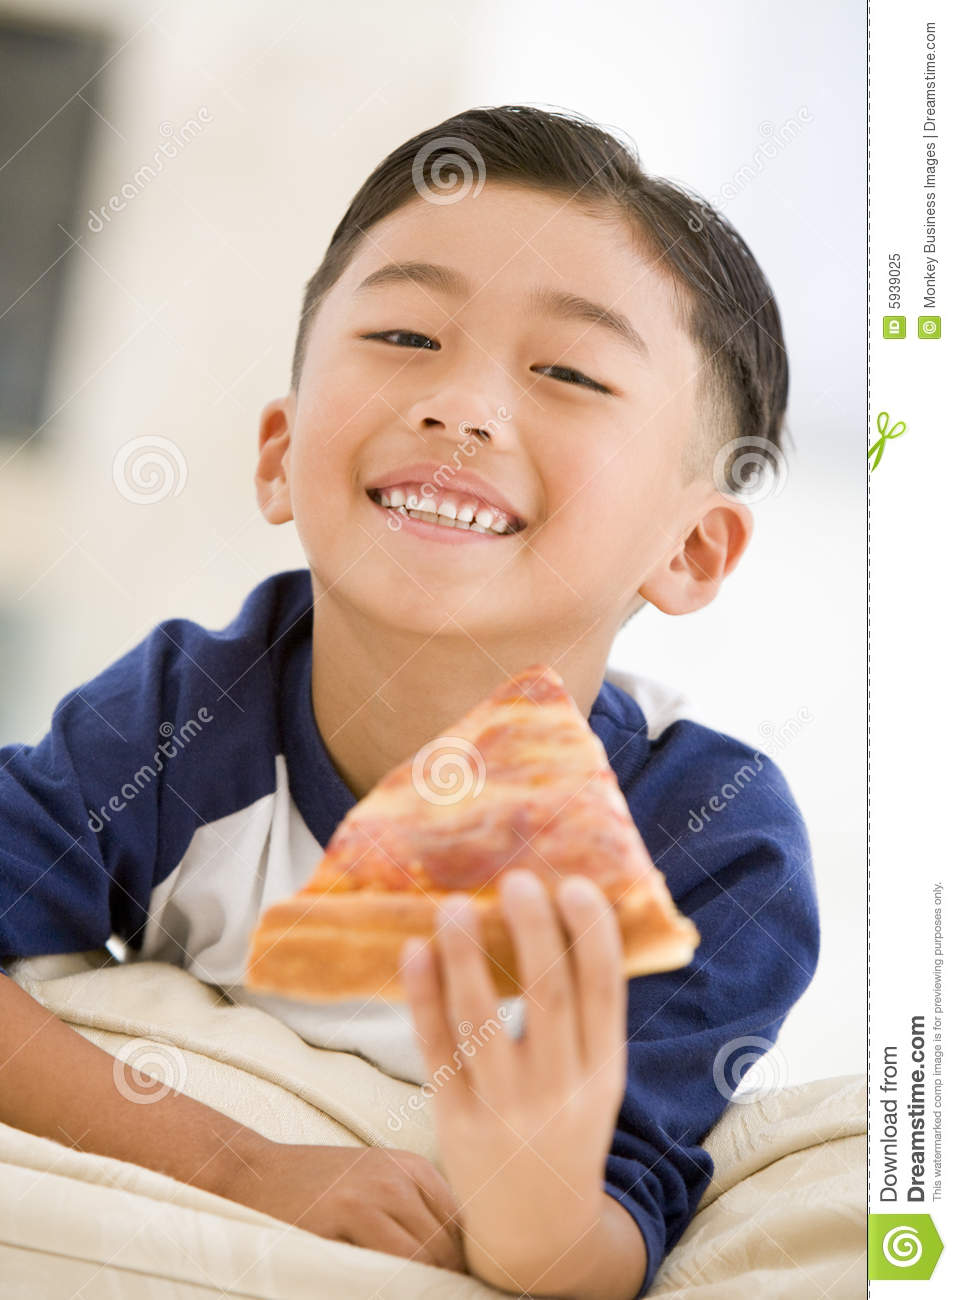 Young boy eating pizza slice in living room